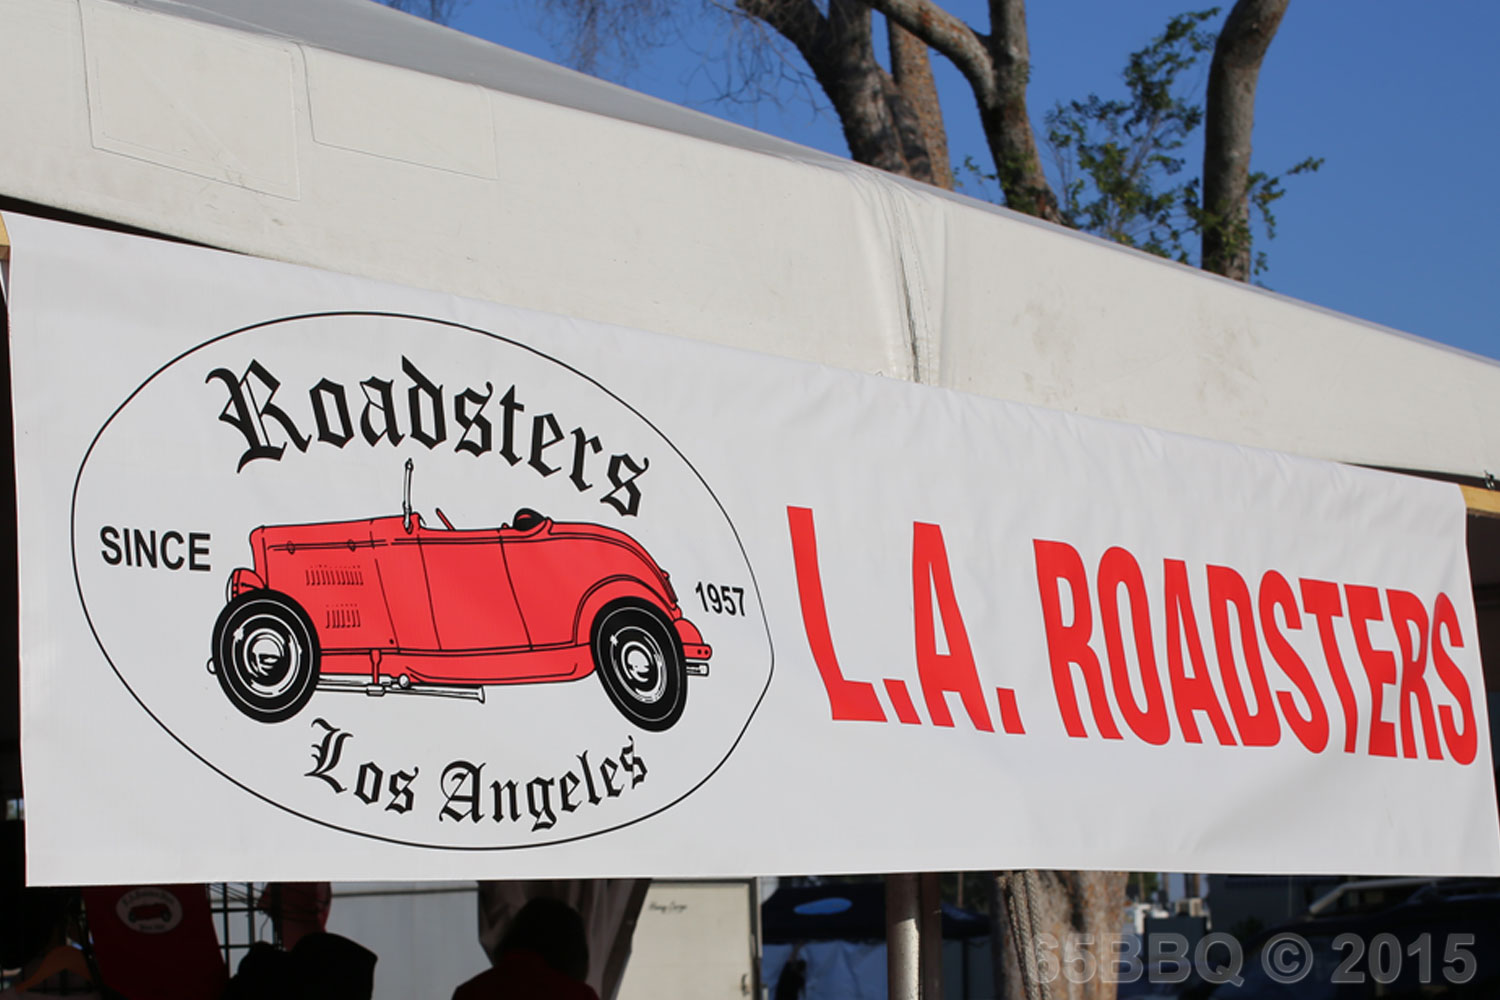 L.A. Roadsters car show photos 2015